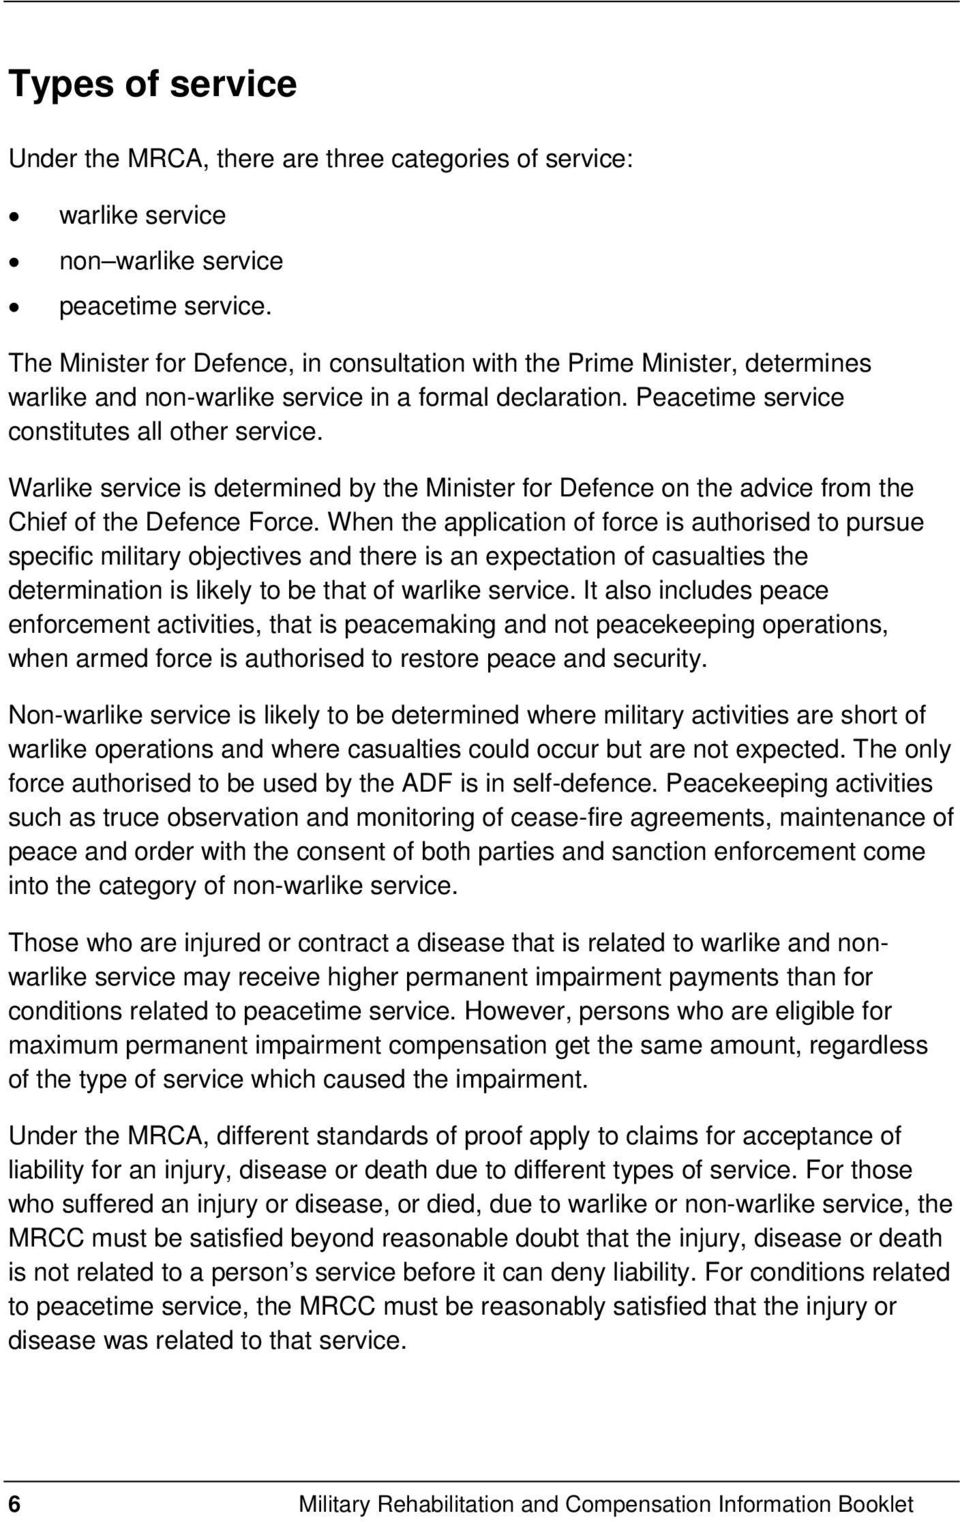 Warlike service is determined by the Minister for Defence on the advice from the Chief of the Defence Force.